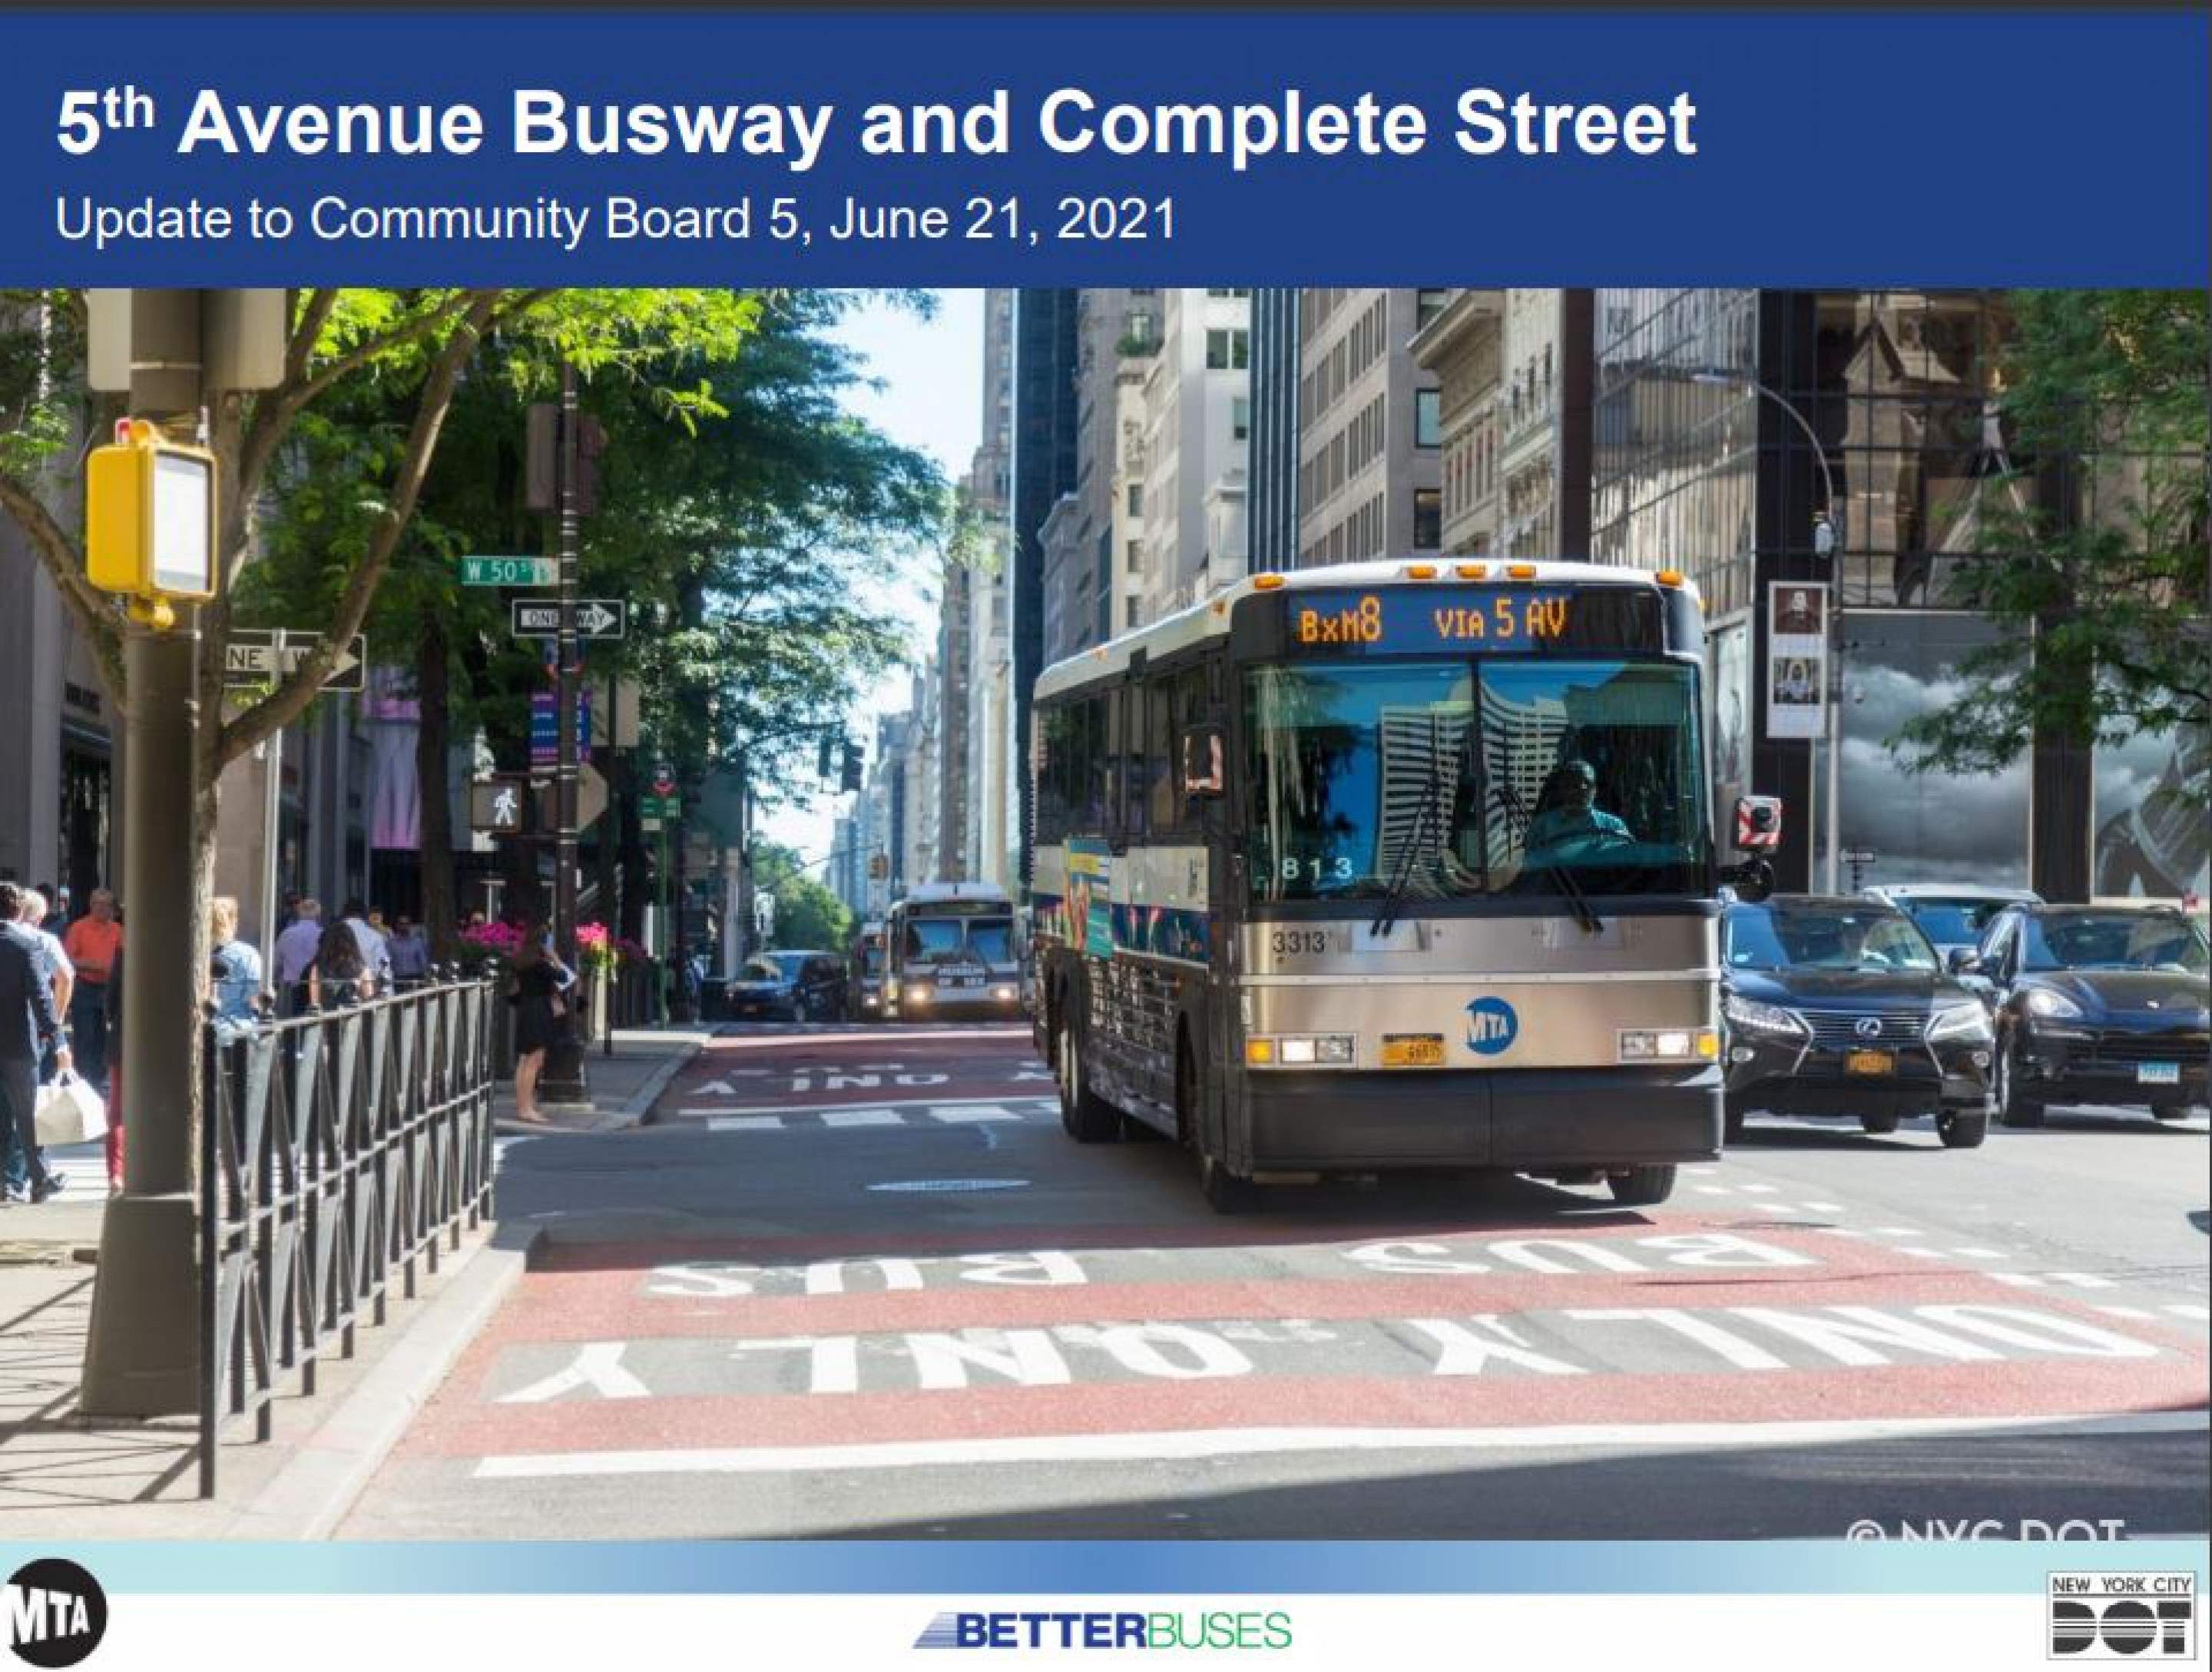 Banner Photo: 5th Avenue Busway and Complete Streets Proposal